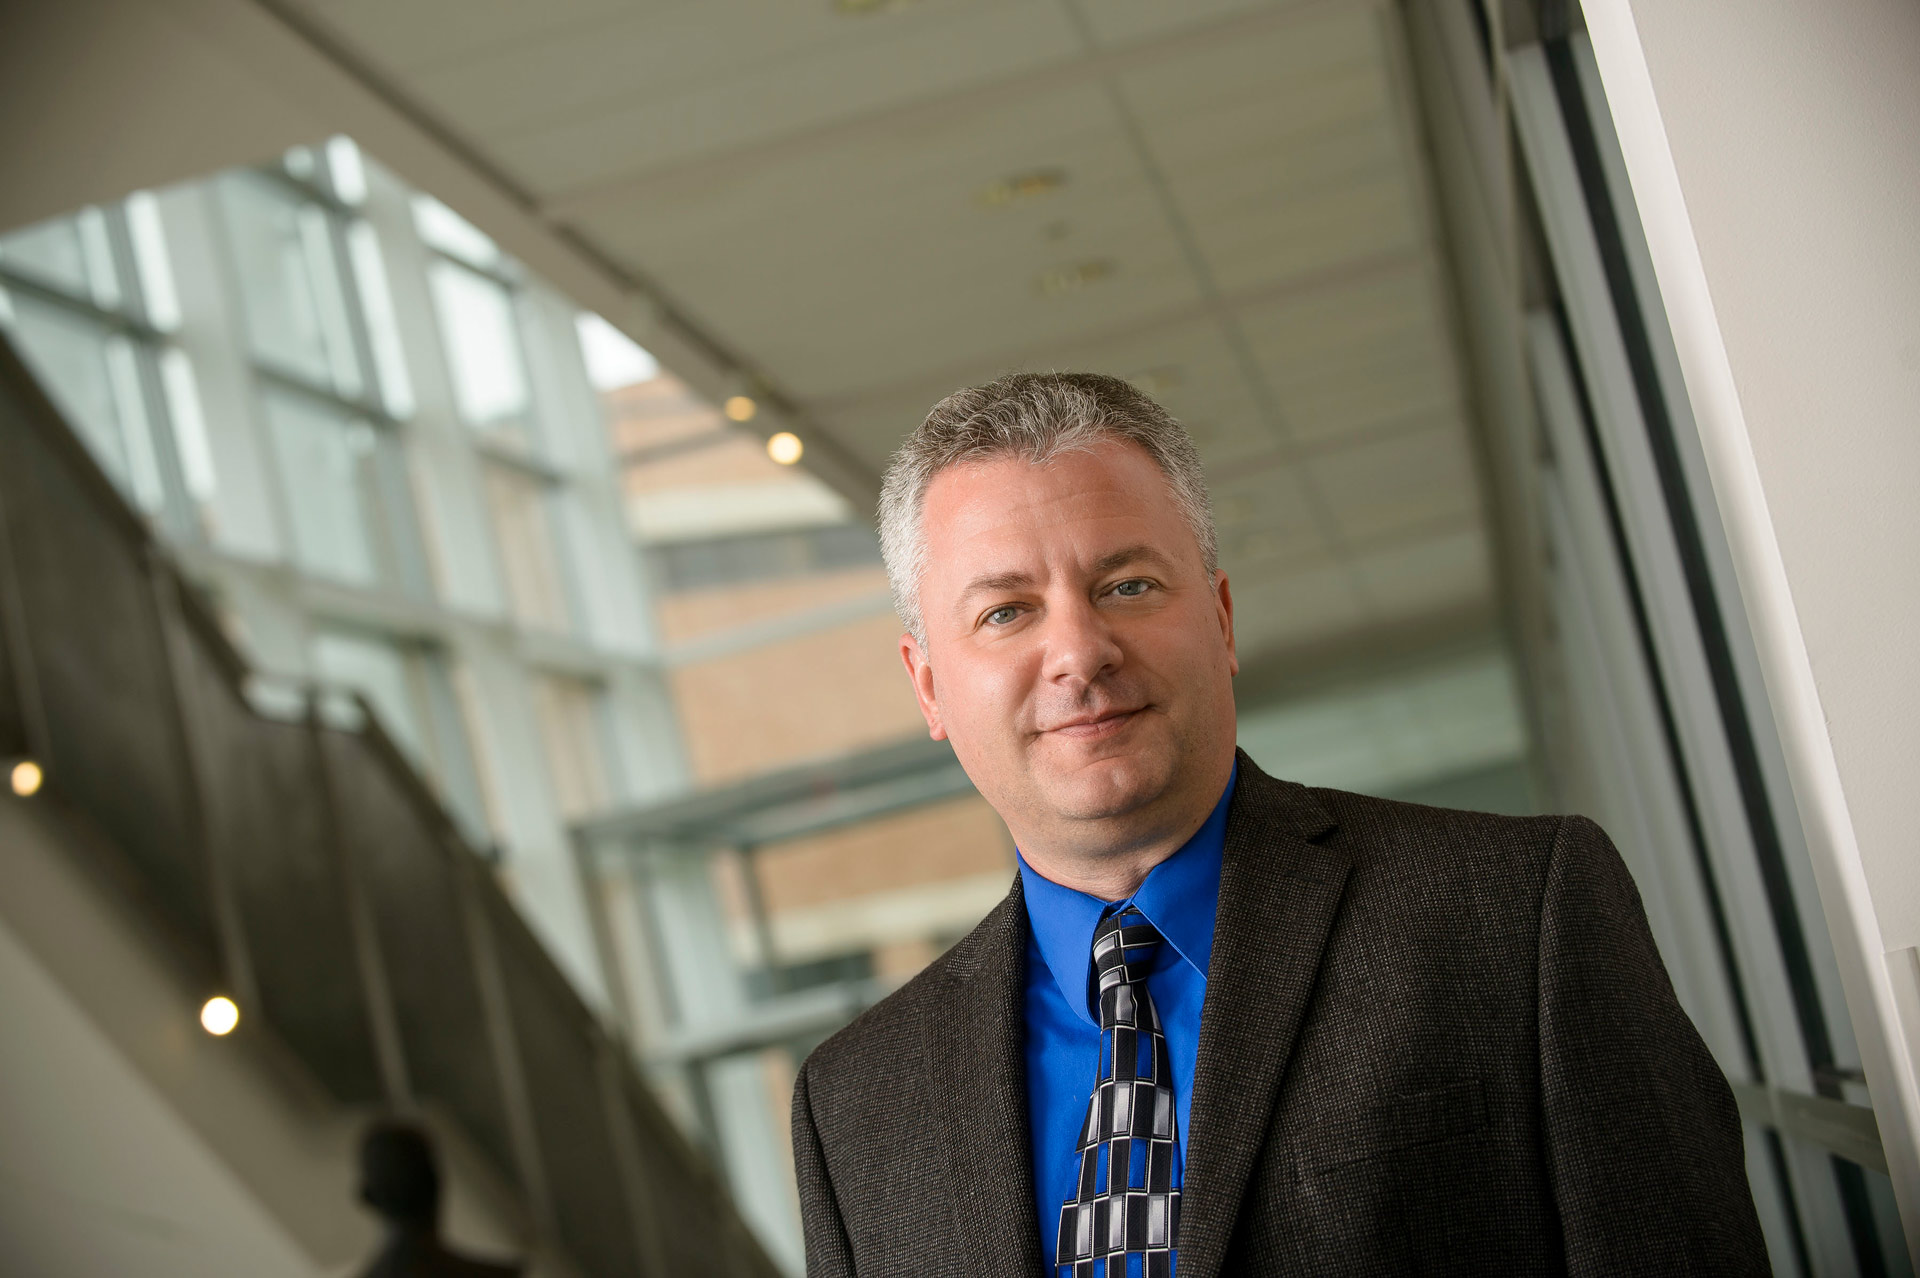 UHCL appoints senior vice president for academic affairs and provost